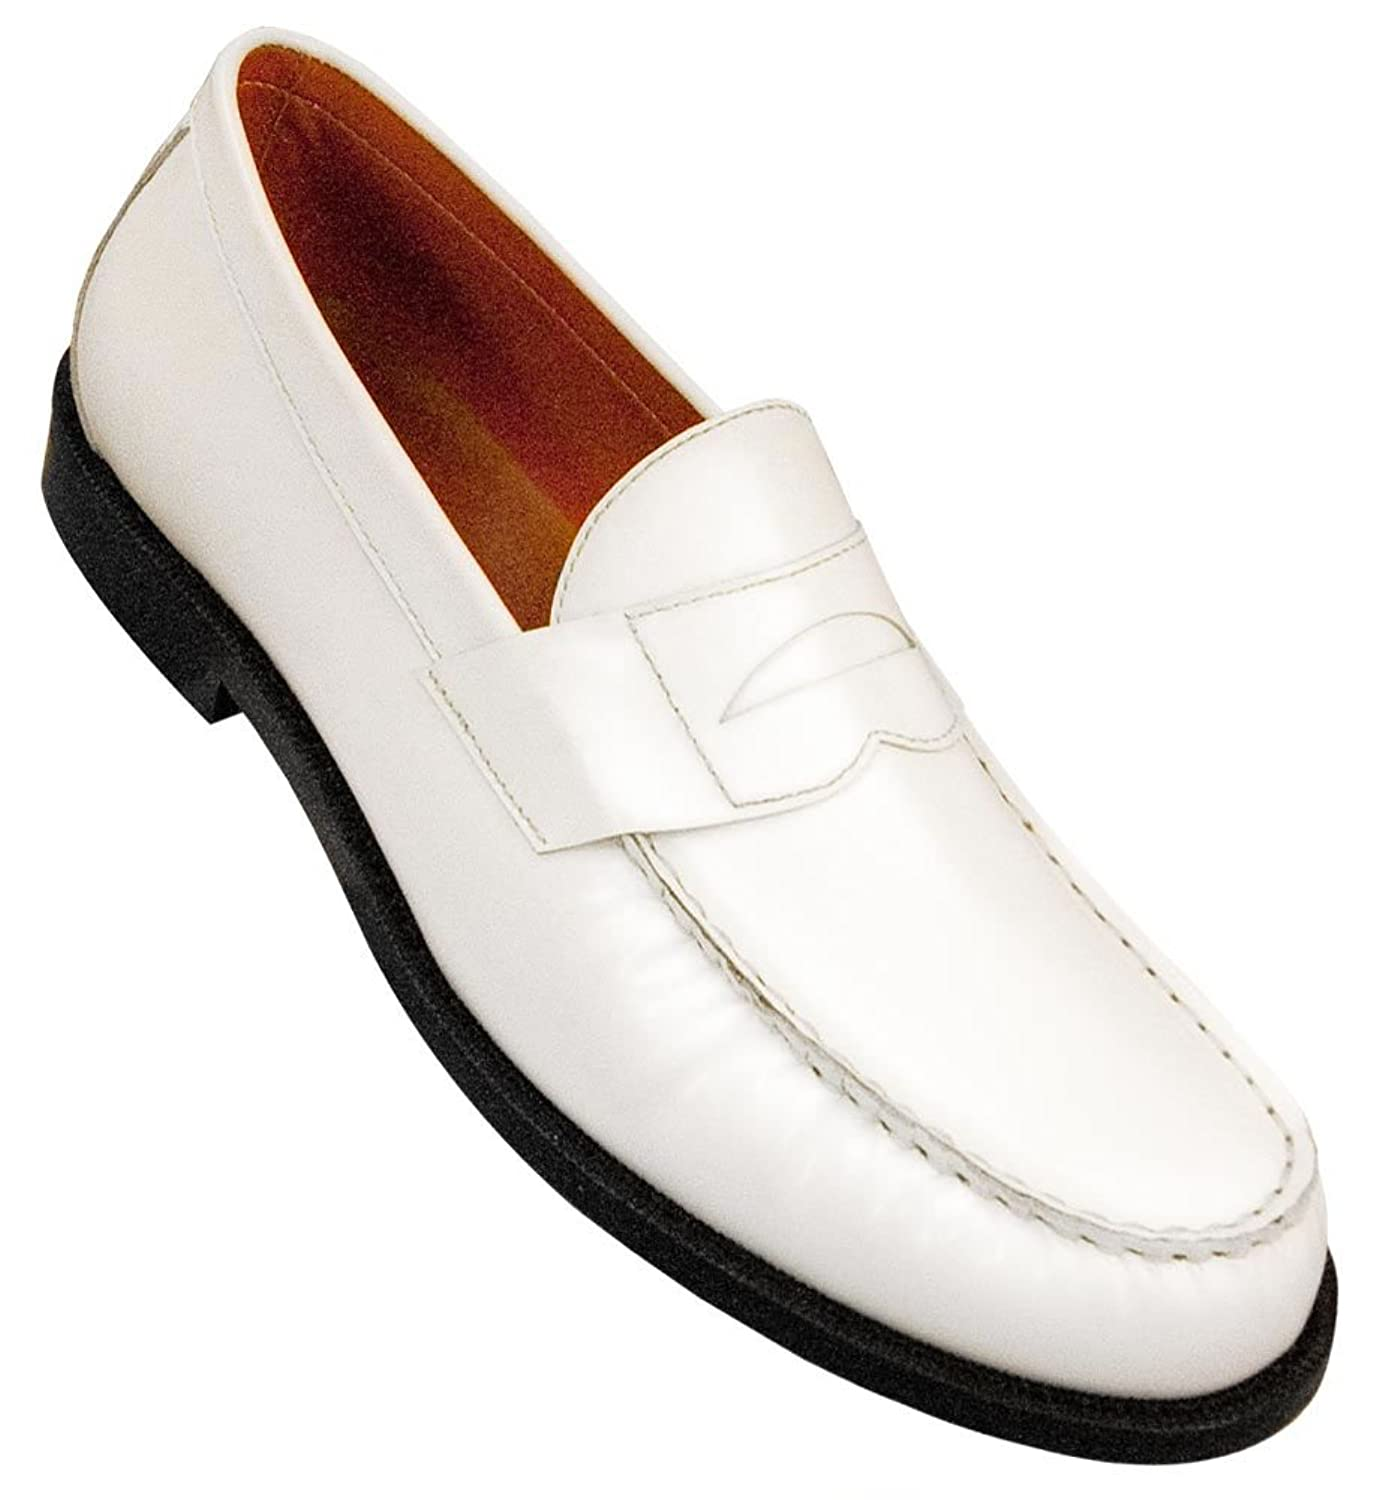 Retro Style Dance Shoes Aris Allen Mens White Dance Loafers $48.95 AT vintagedancer.com